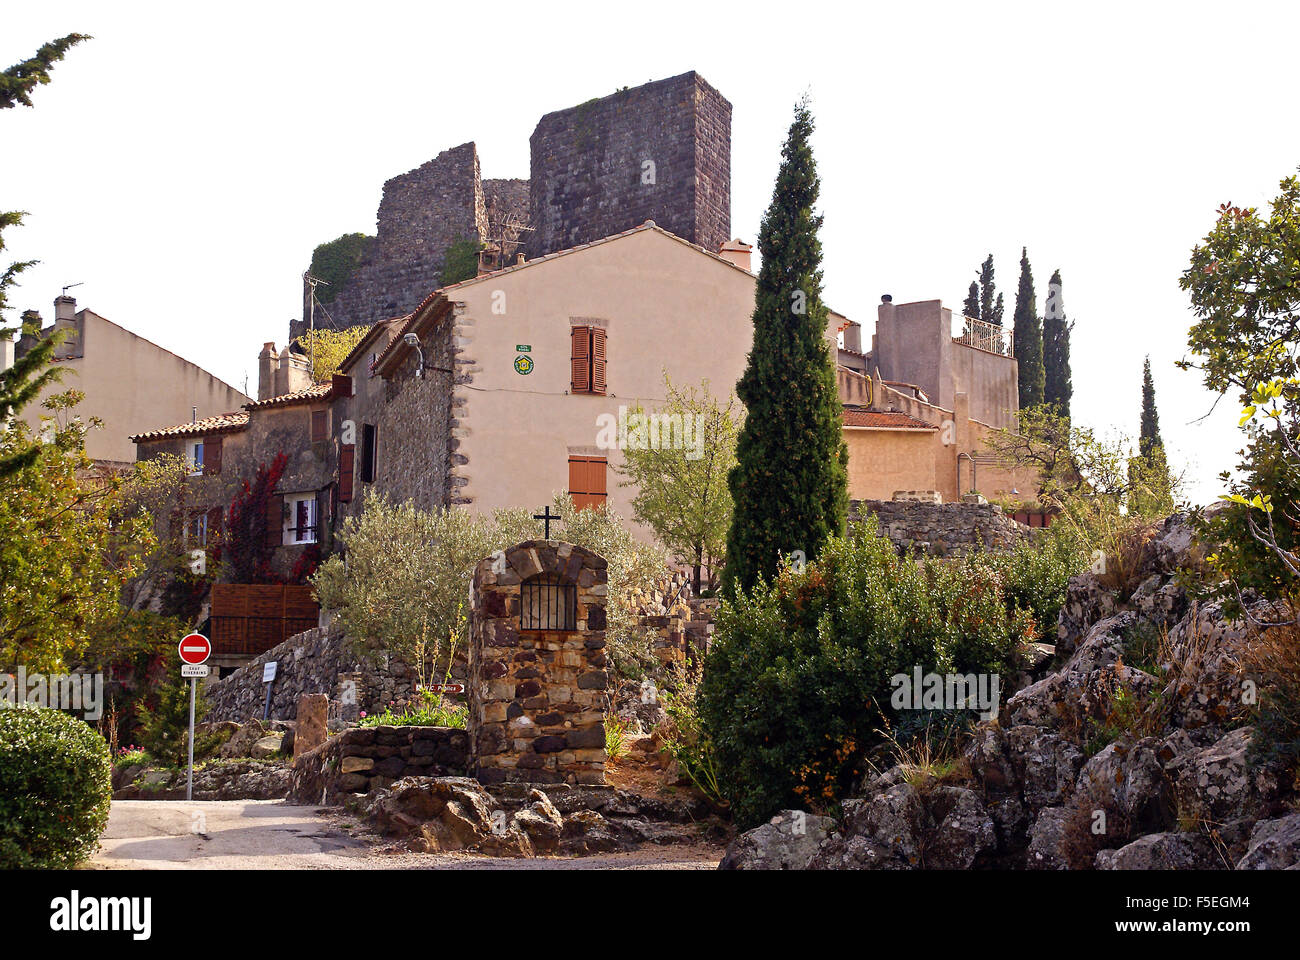 The village and chateau at Evenos - Stock Image